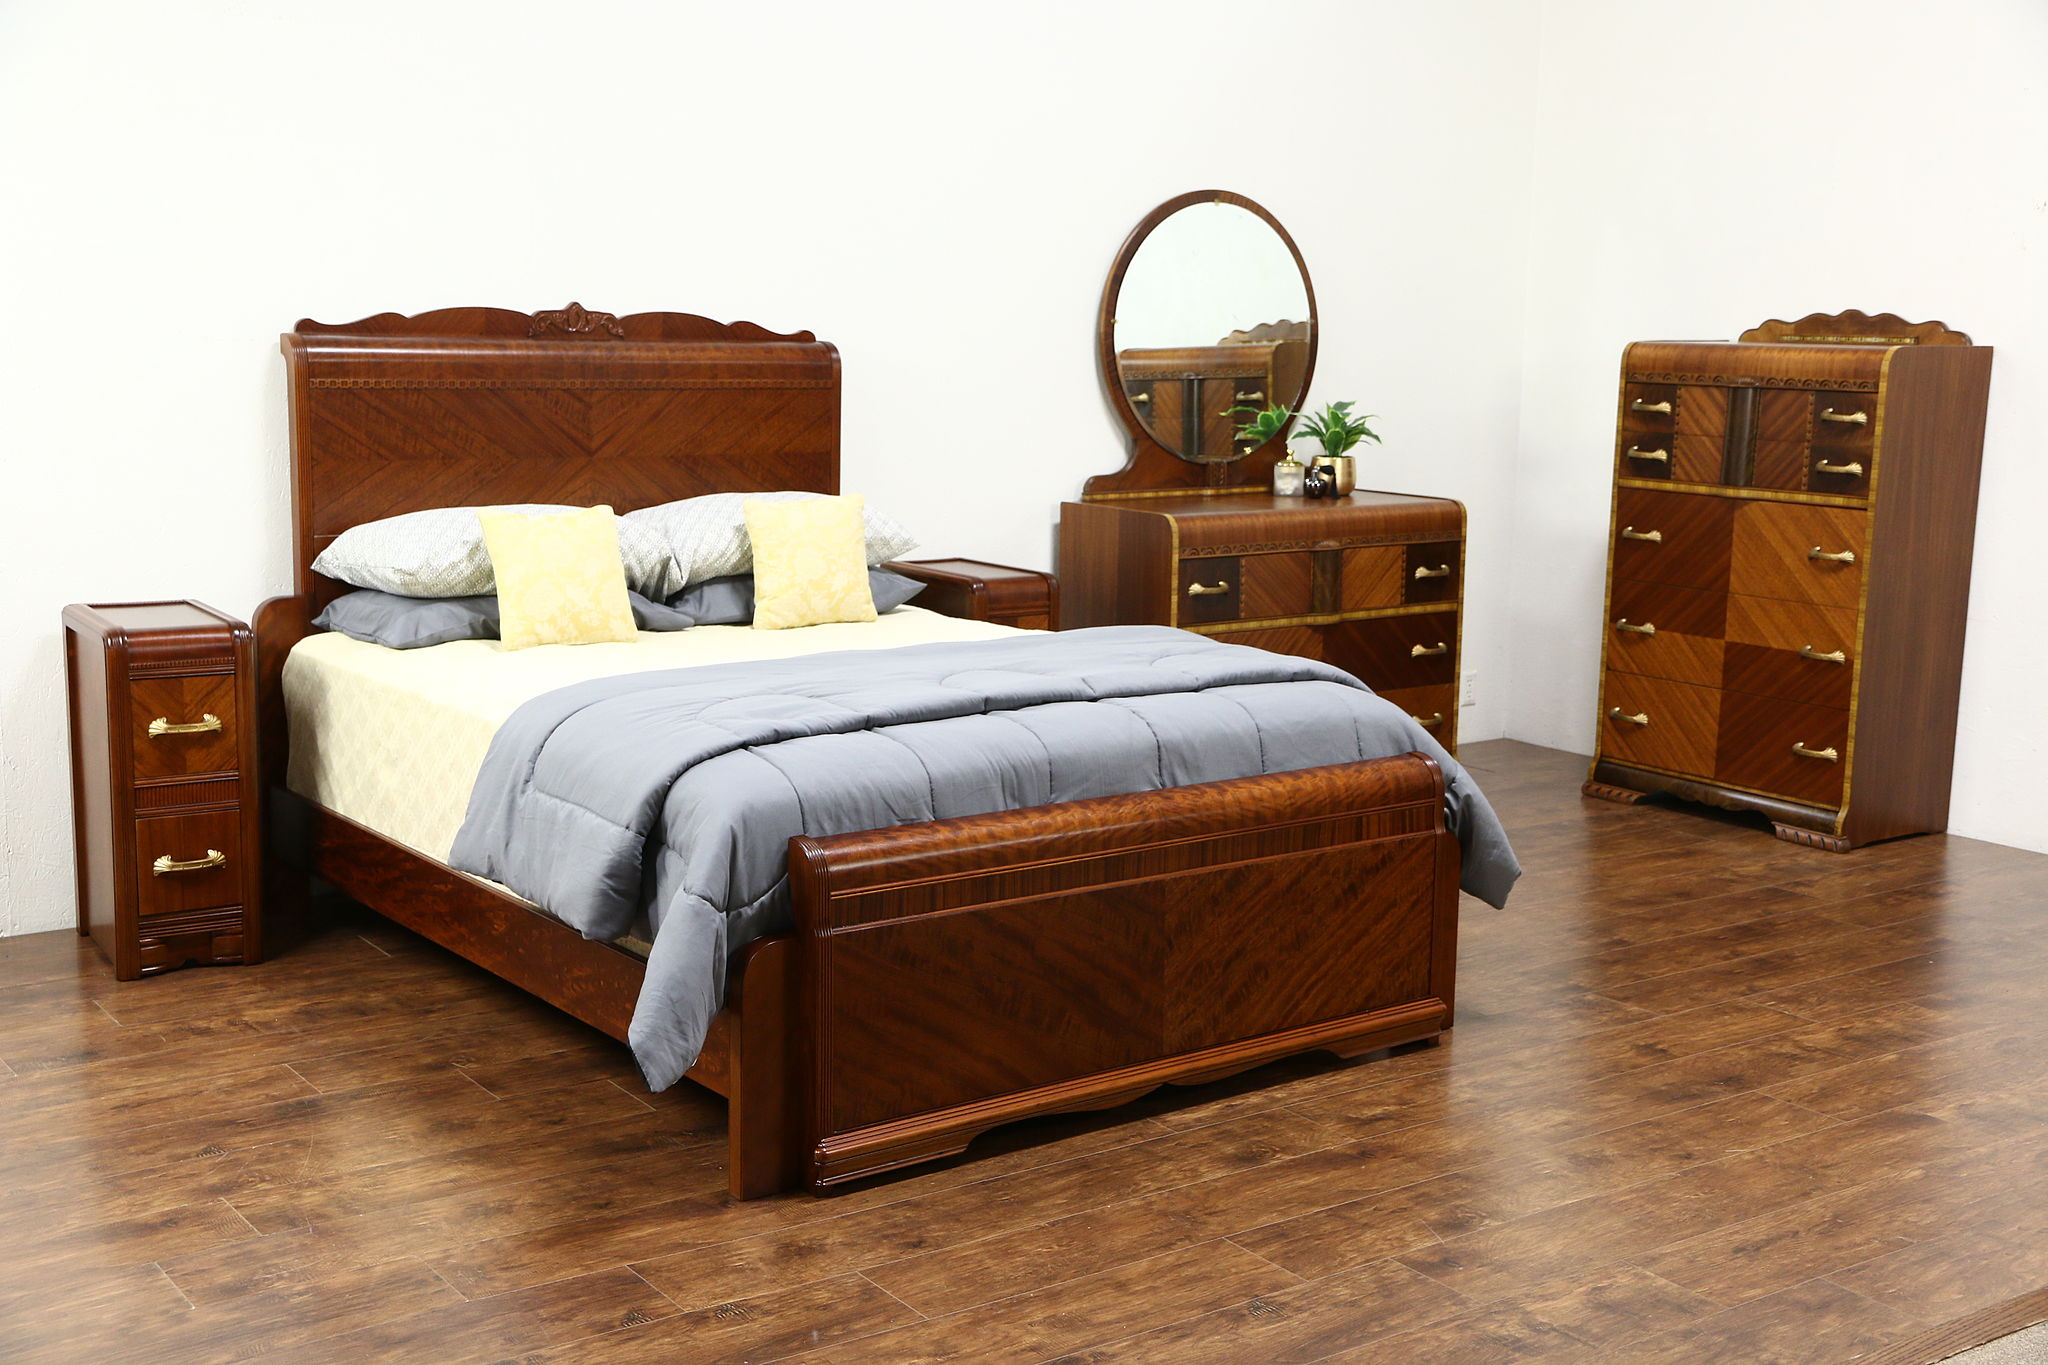 SOLD - Art Deco Waterfall Vintage 5 Pc. Bedroom Set, Queen Bed ...